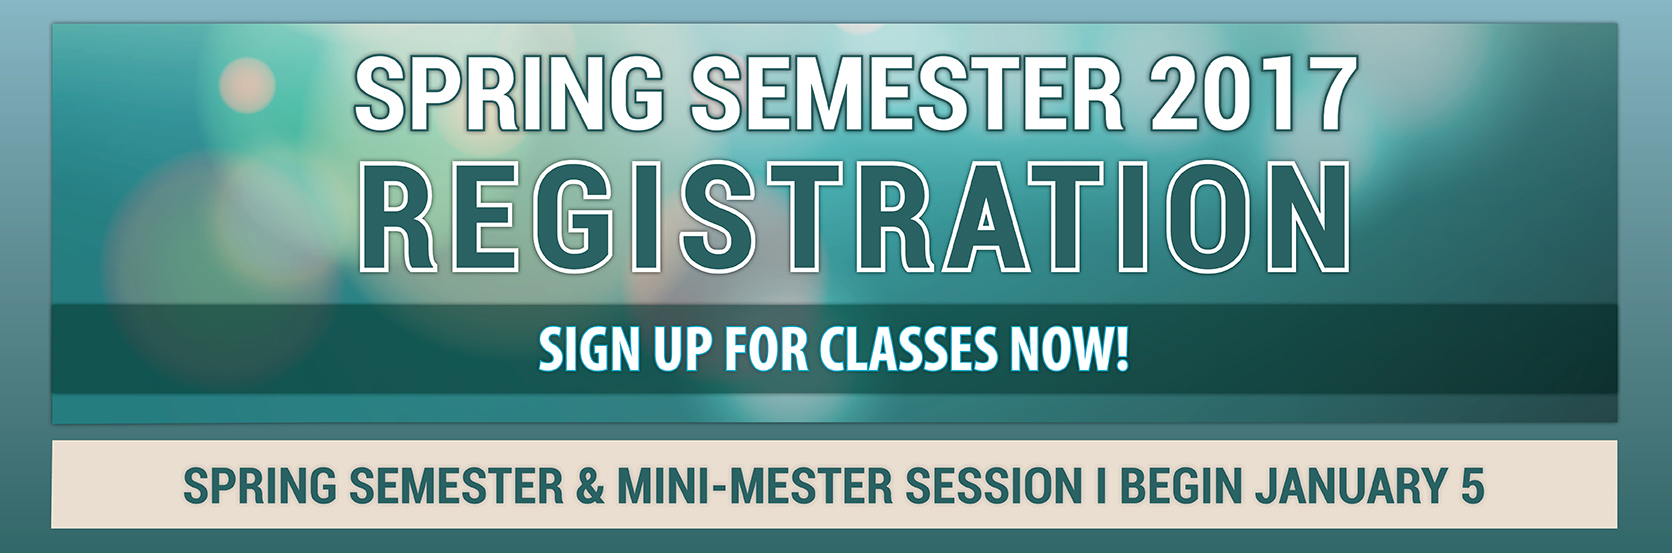 Spring Semester and Mini-Mester Session I begin January 5. See an advisor now to sign up for the classes you need!